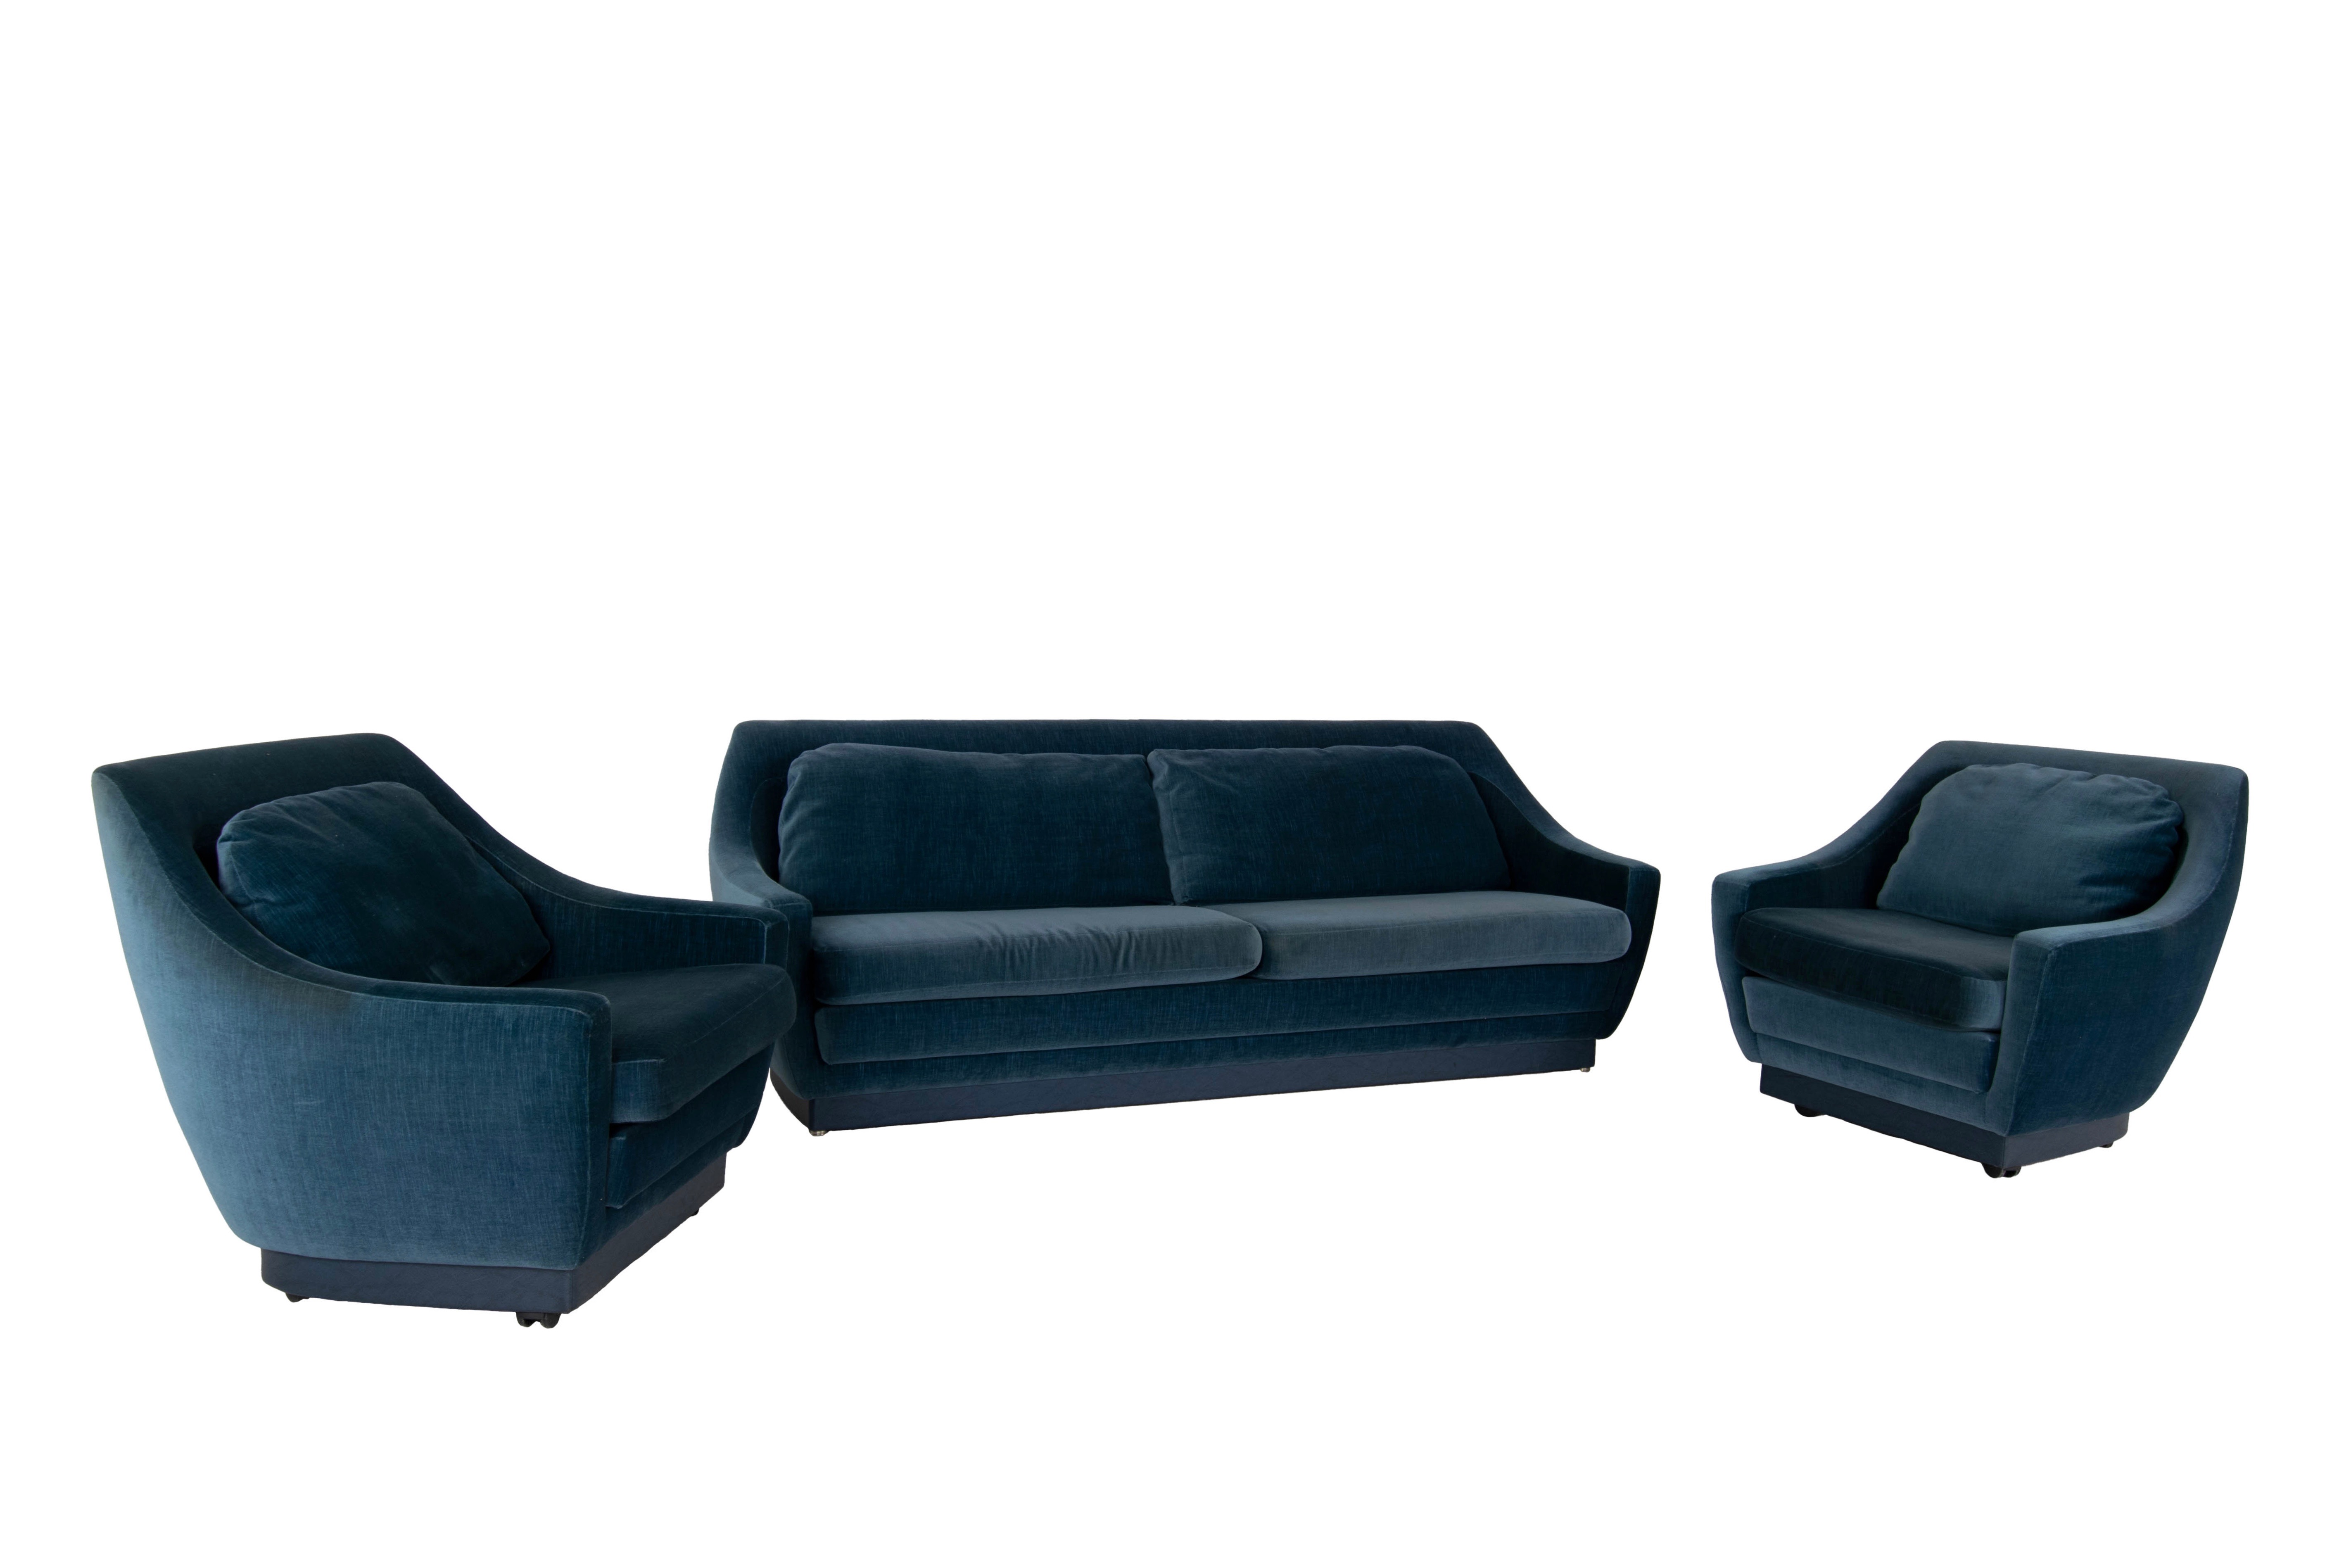 Set of Art Deco Style Velvet Blue Sofa and Two Lounge Chairs, The Netherlands